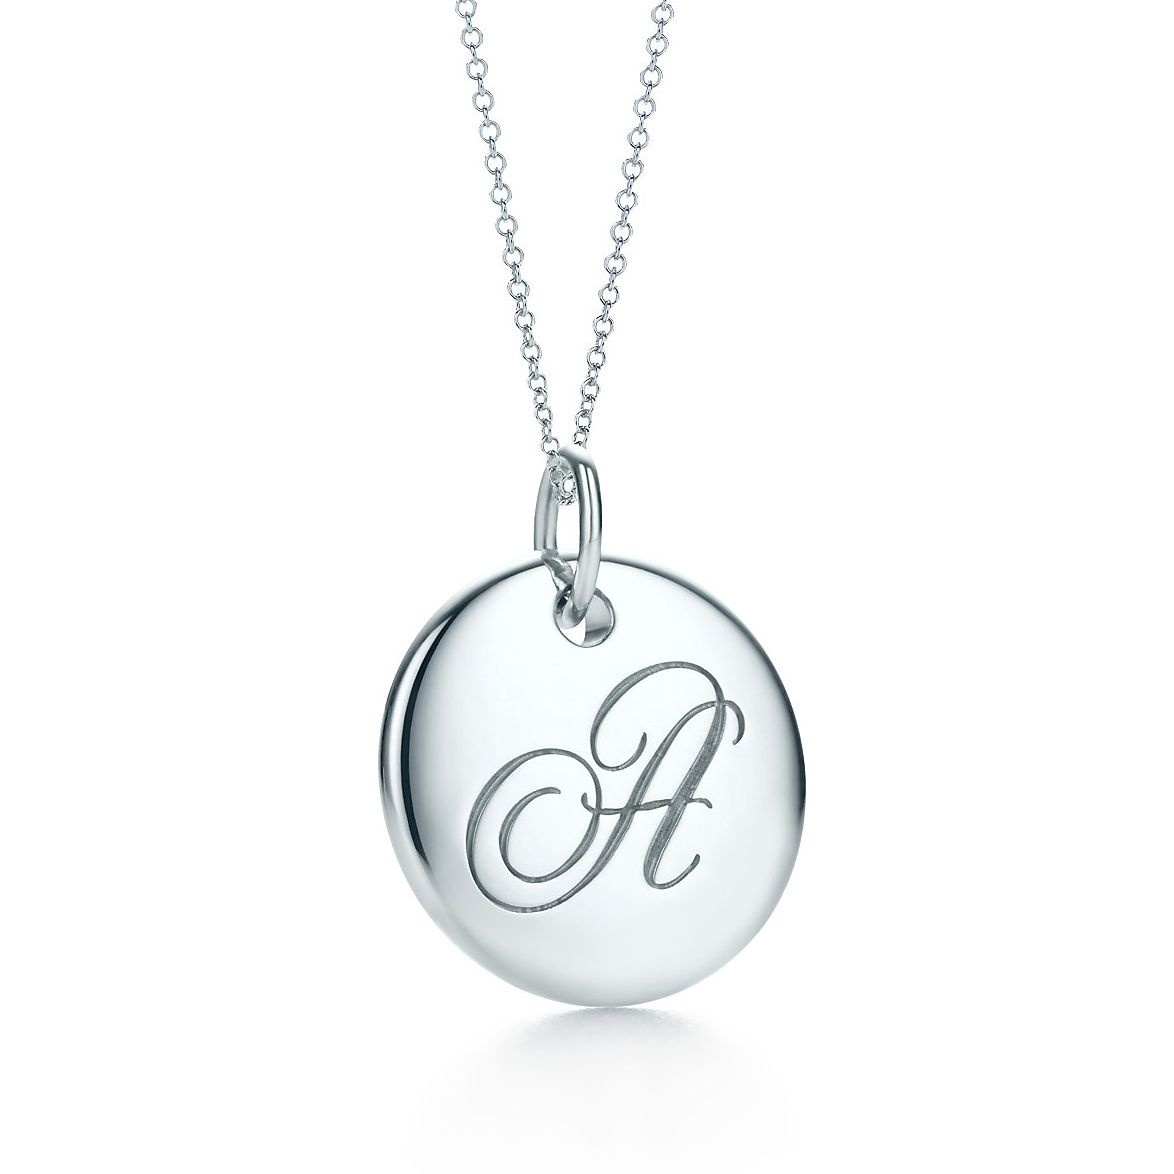 alphabet m constrain hei jewelry necklace id fit notes g pendant on chain fmt tiffany pendants ed a letters disc charm wid z silver in necklaces